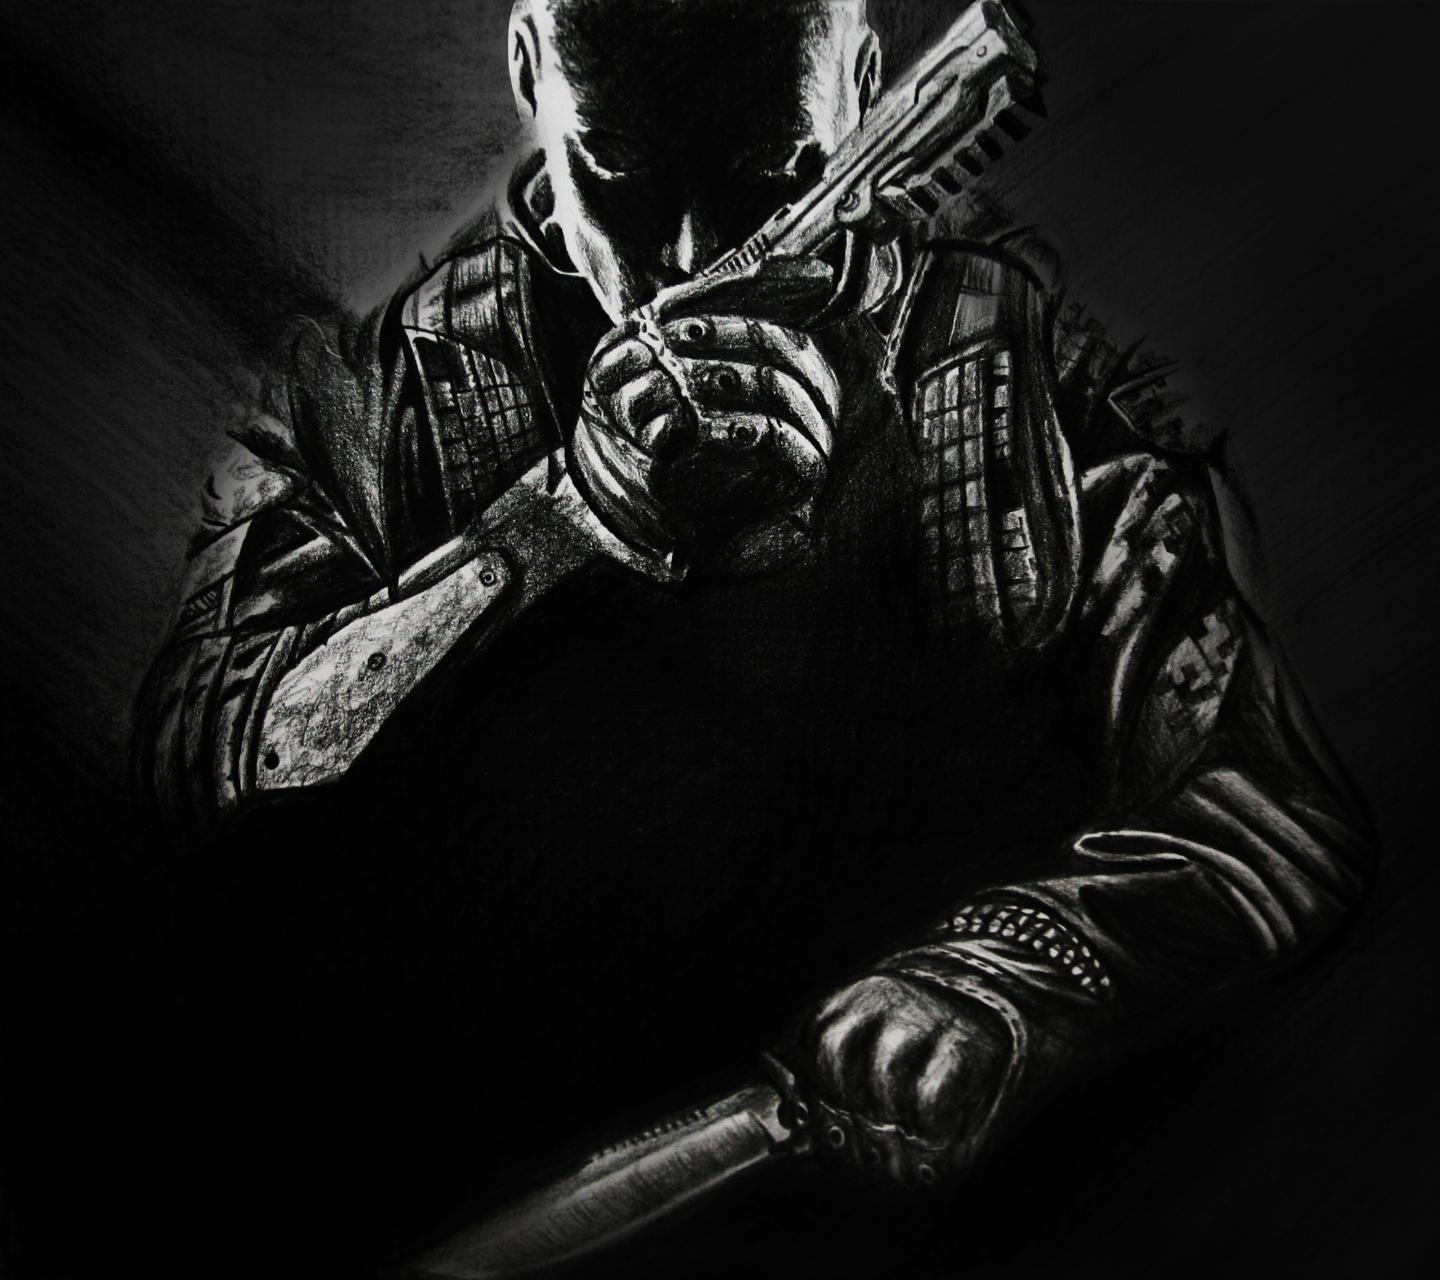 Call Of Duty Black Ops 2 Wallpaper: +60 Wallpapers De Juegos